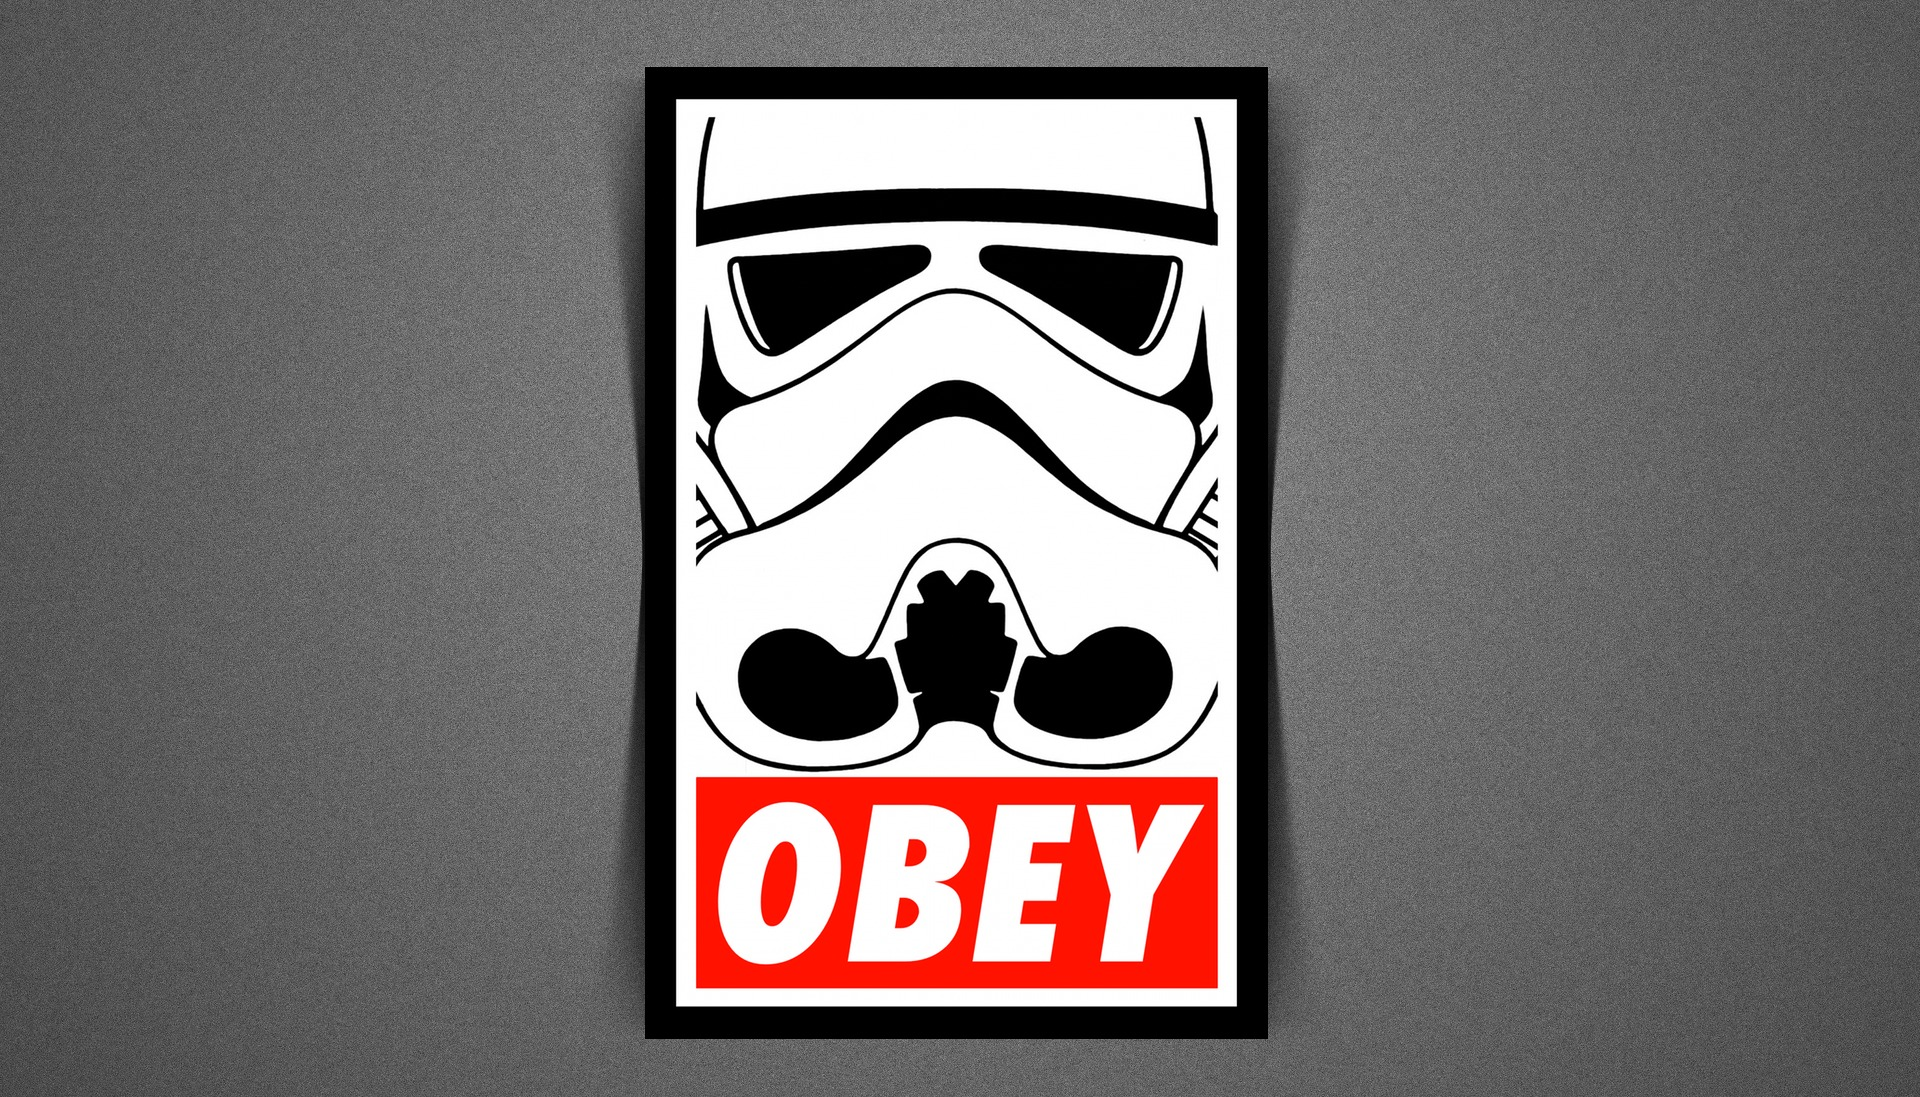 Obey Backgrounds Desktop 1920x1097